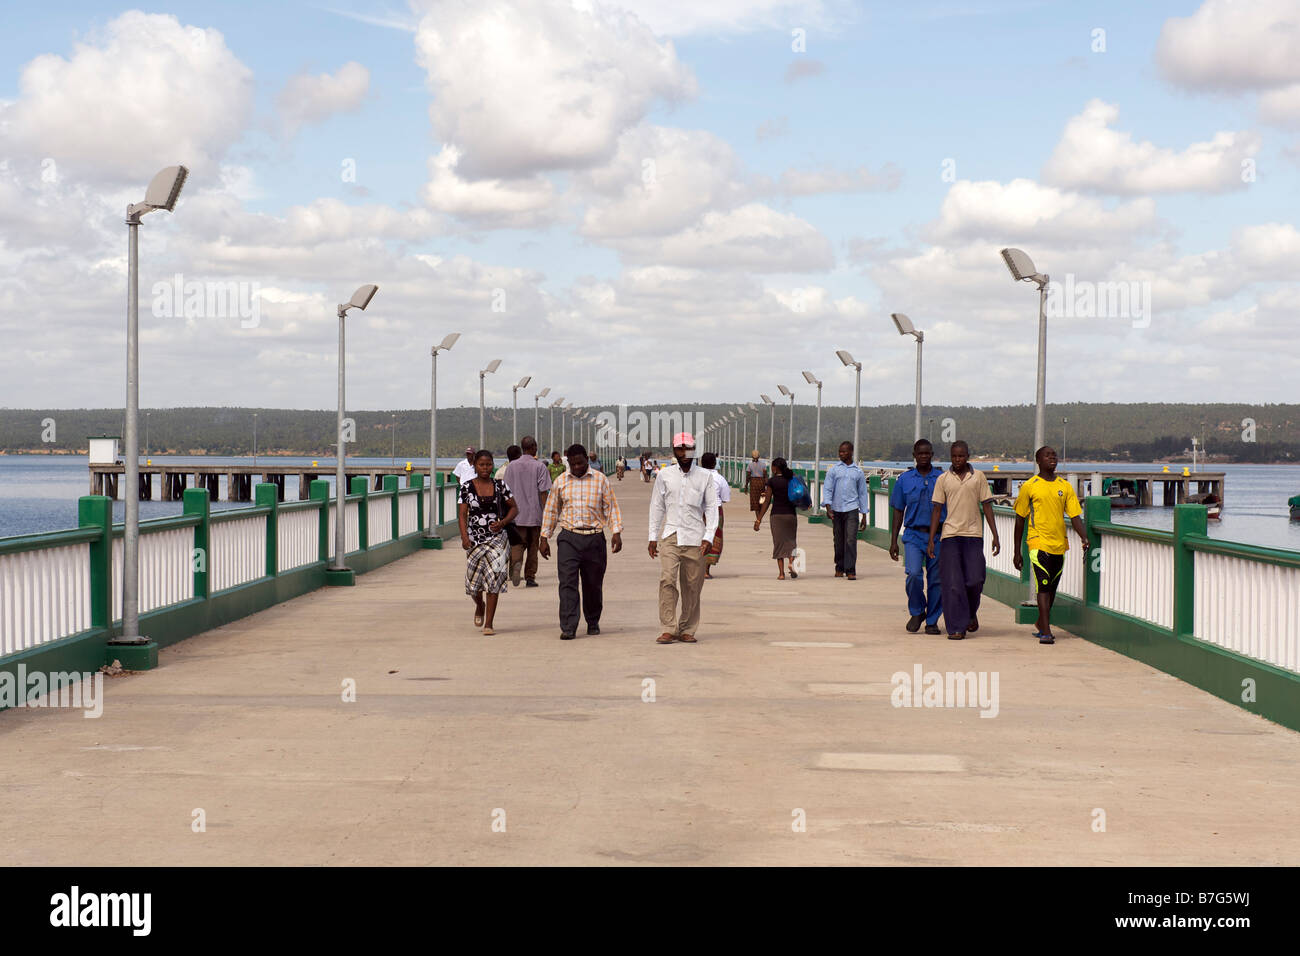 Pedestrians on the pier in the town of Inhambane in Mozambique. - Stock Image